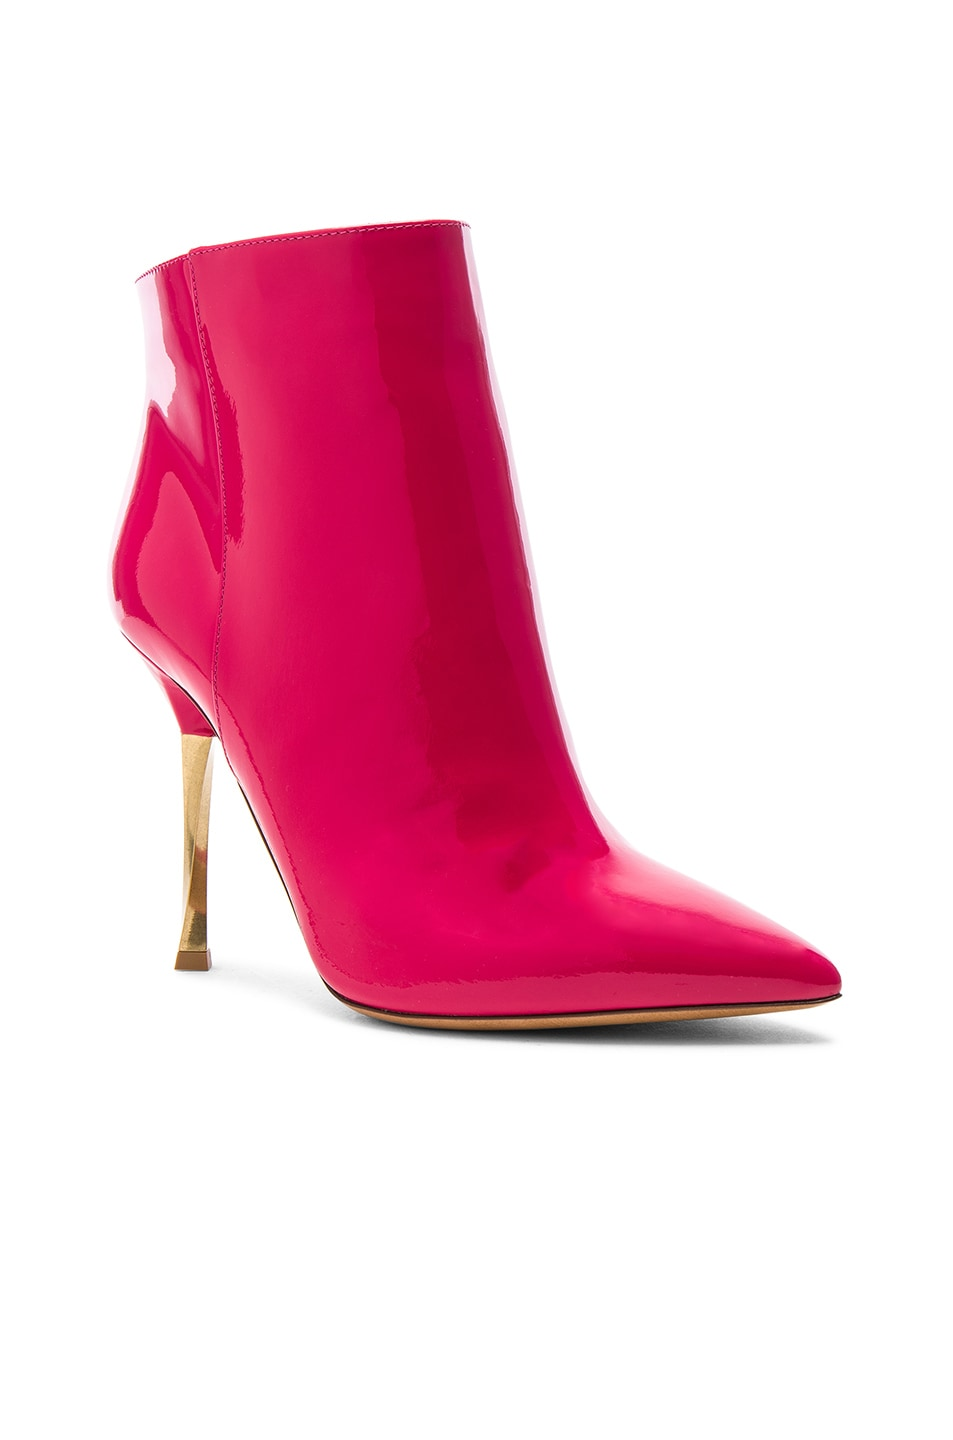 Image 2 of Valentino Patent Leather Ankle Boots in Fuchsia